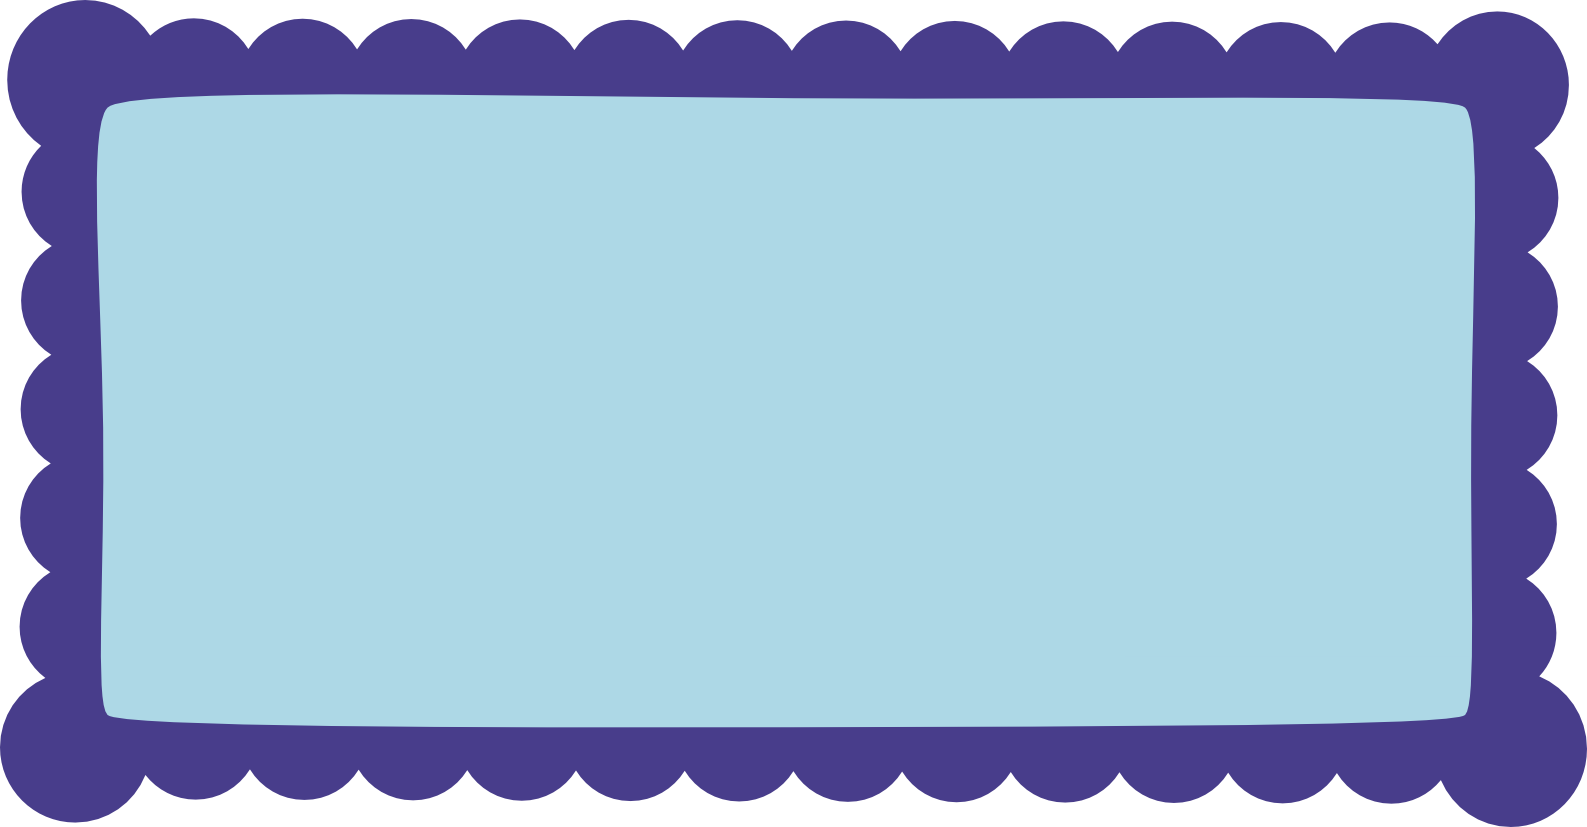 label frames png - photo #30